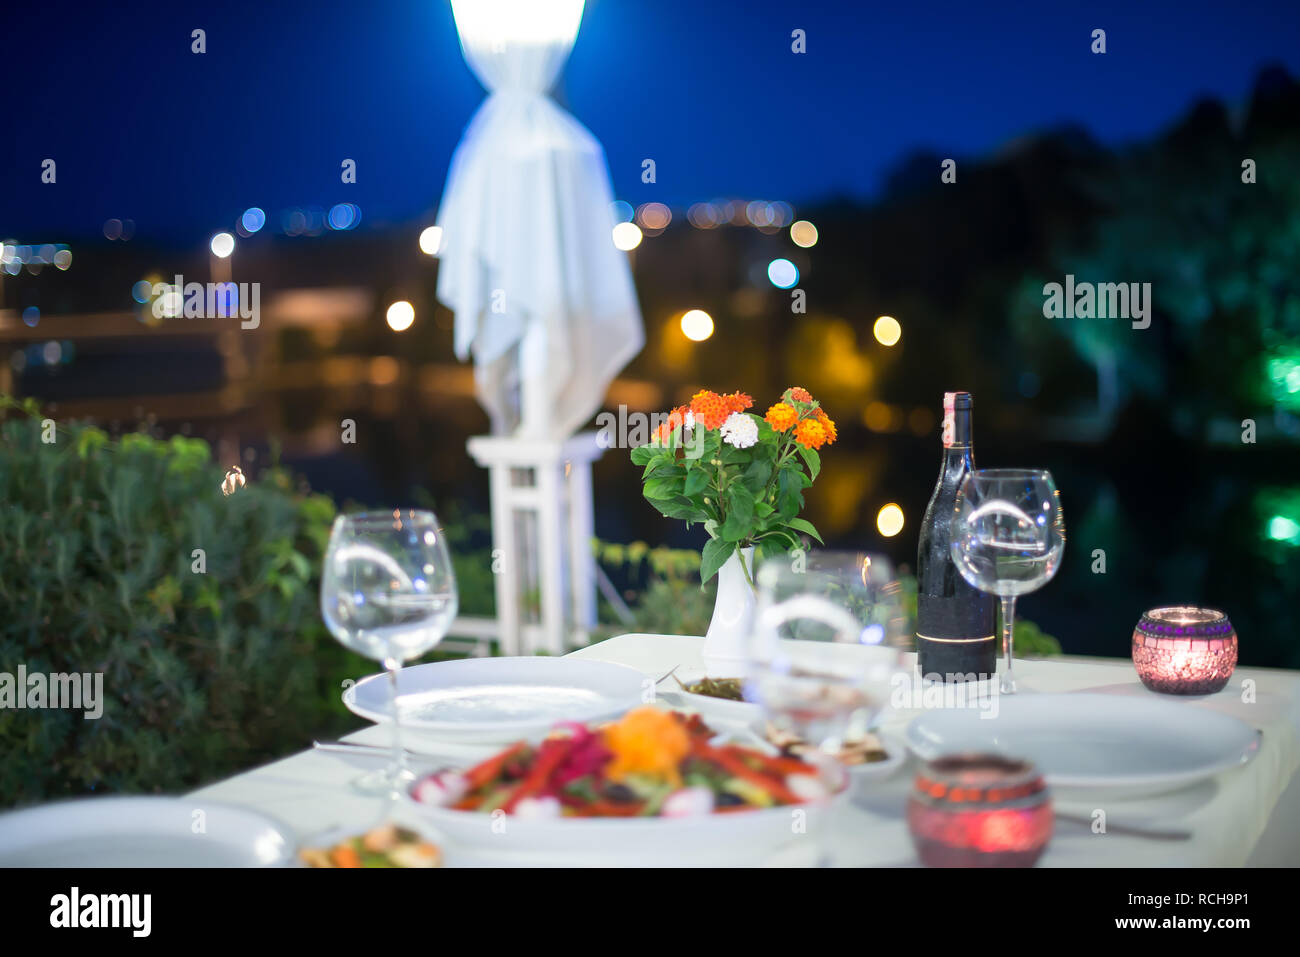 Open Air Restaurant Table At Night Romantic Dinner Ambiance Dinner Outdoor At Nature This Is Elegant Dinner Table Stock Photo Alamy